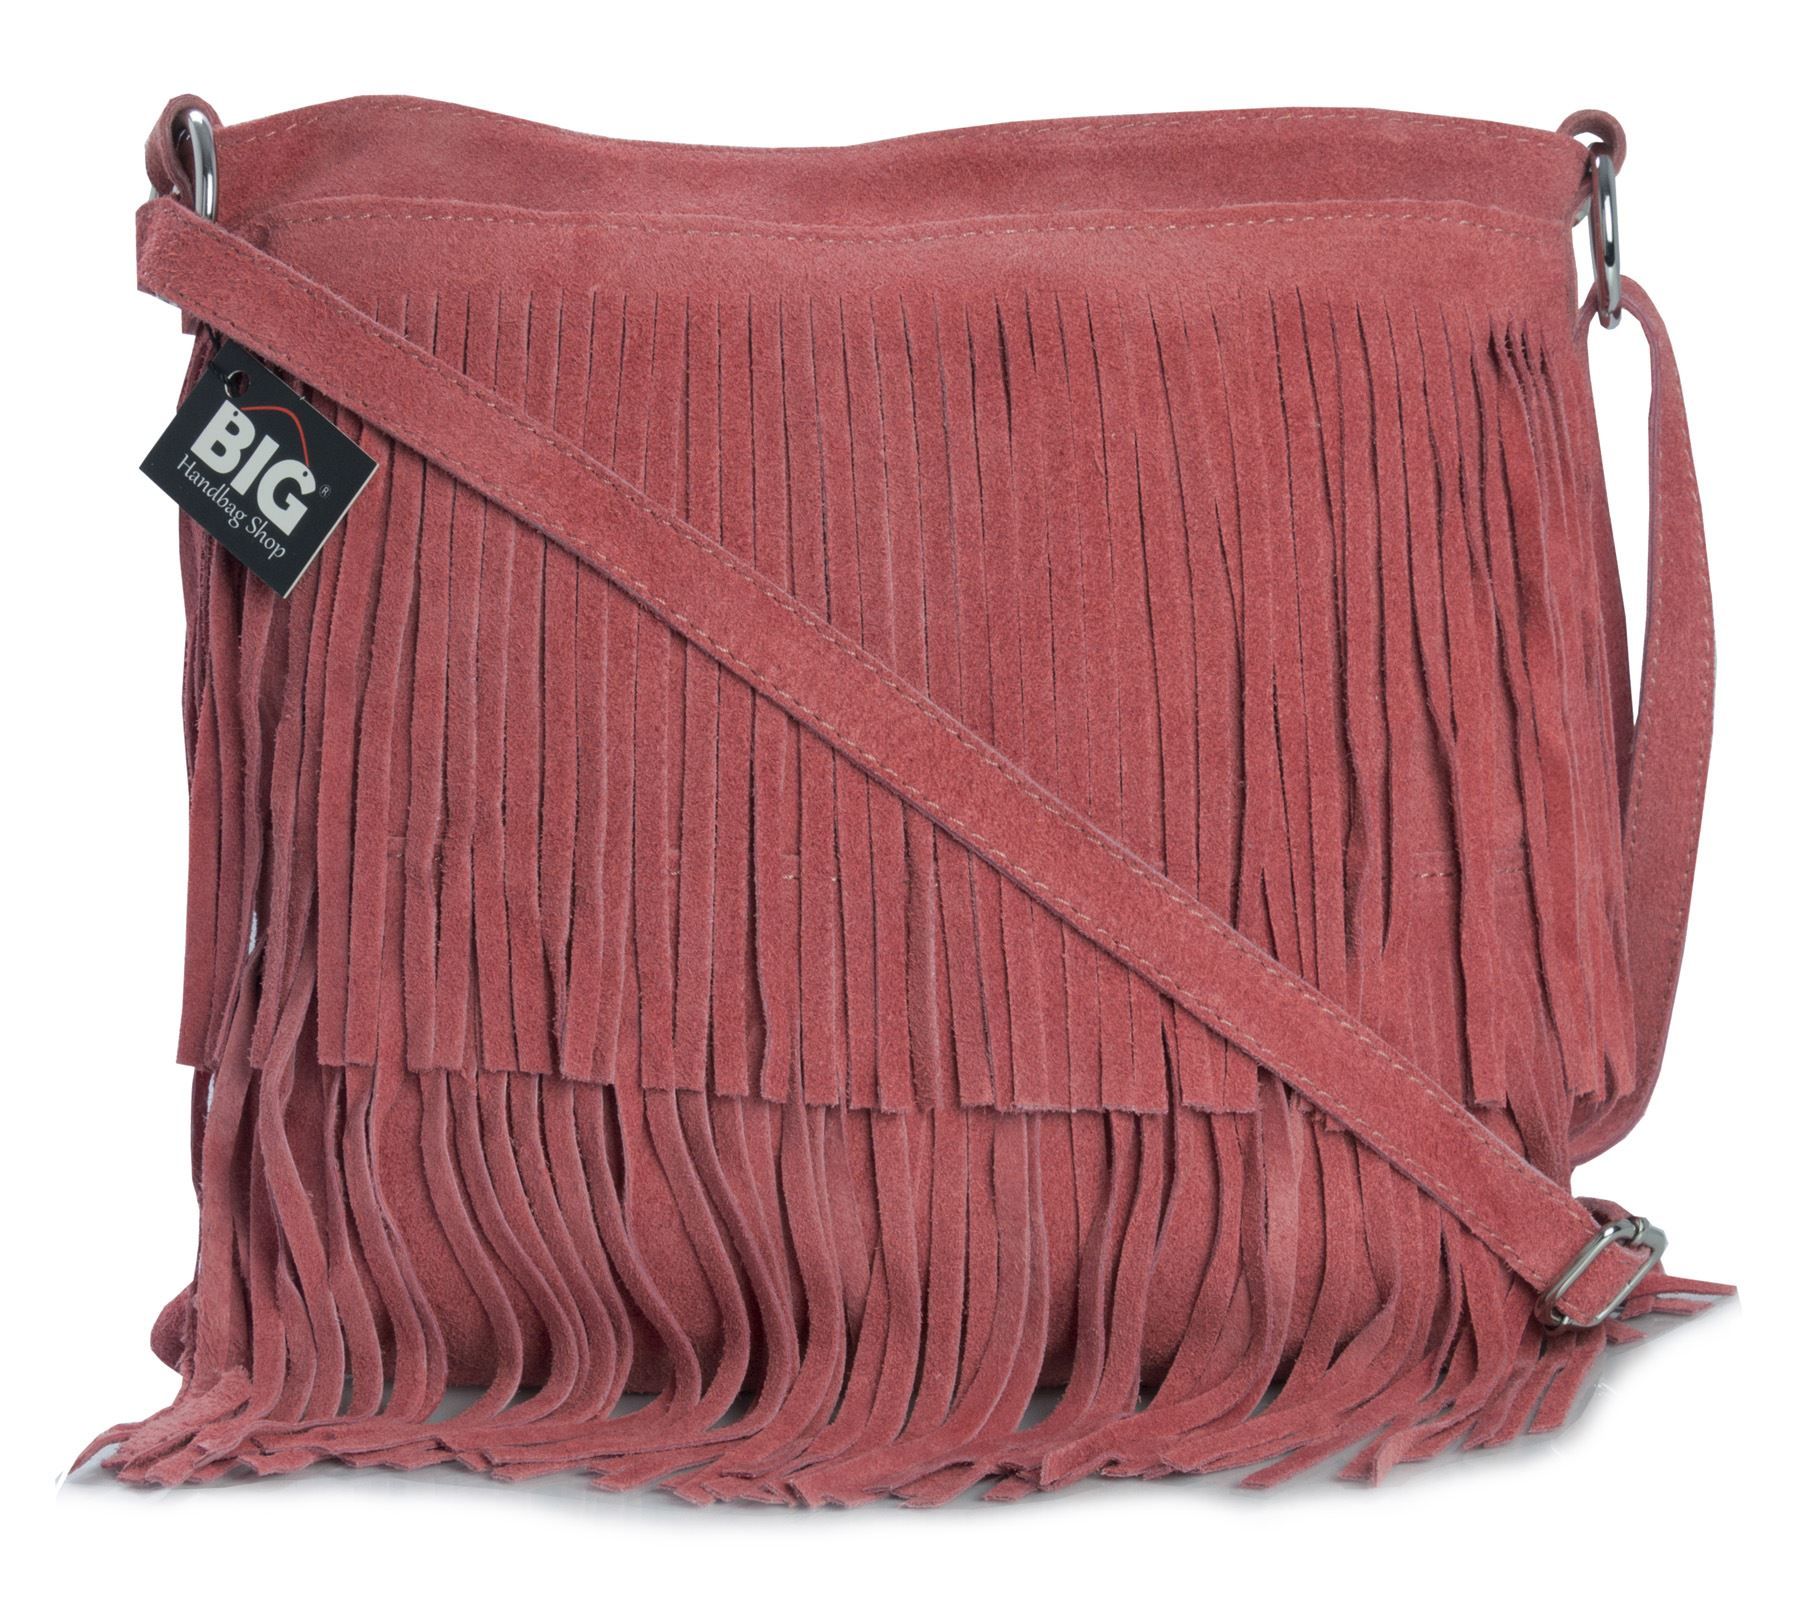 Get the best deals on big buddha fringe bag and save up to 70% off at Poshmark now! Whatever you're shopping for, we've got it.